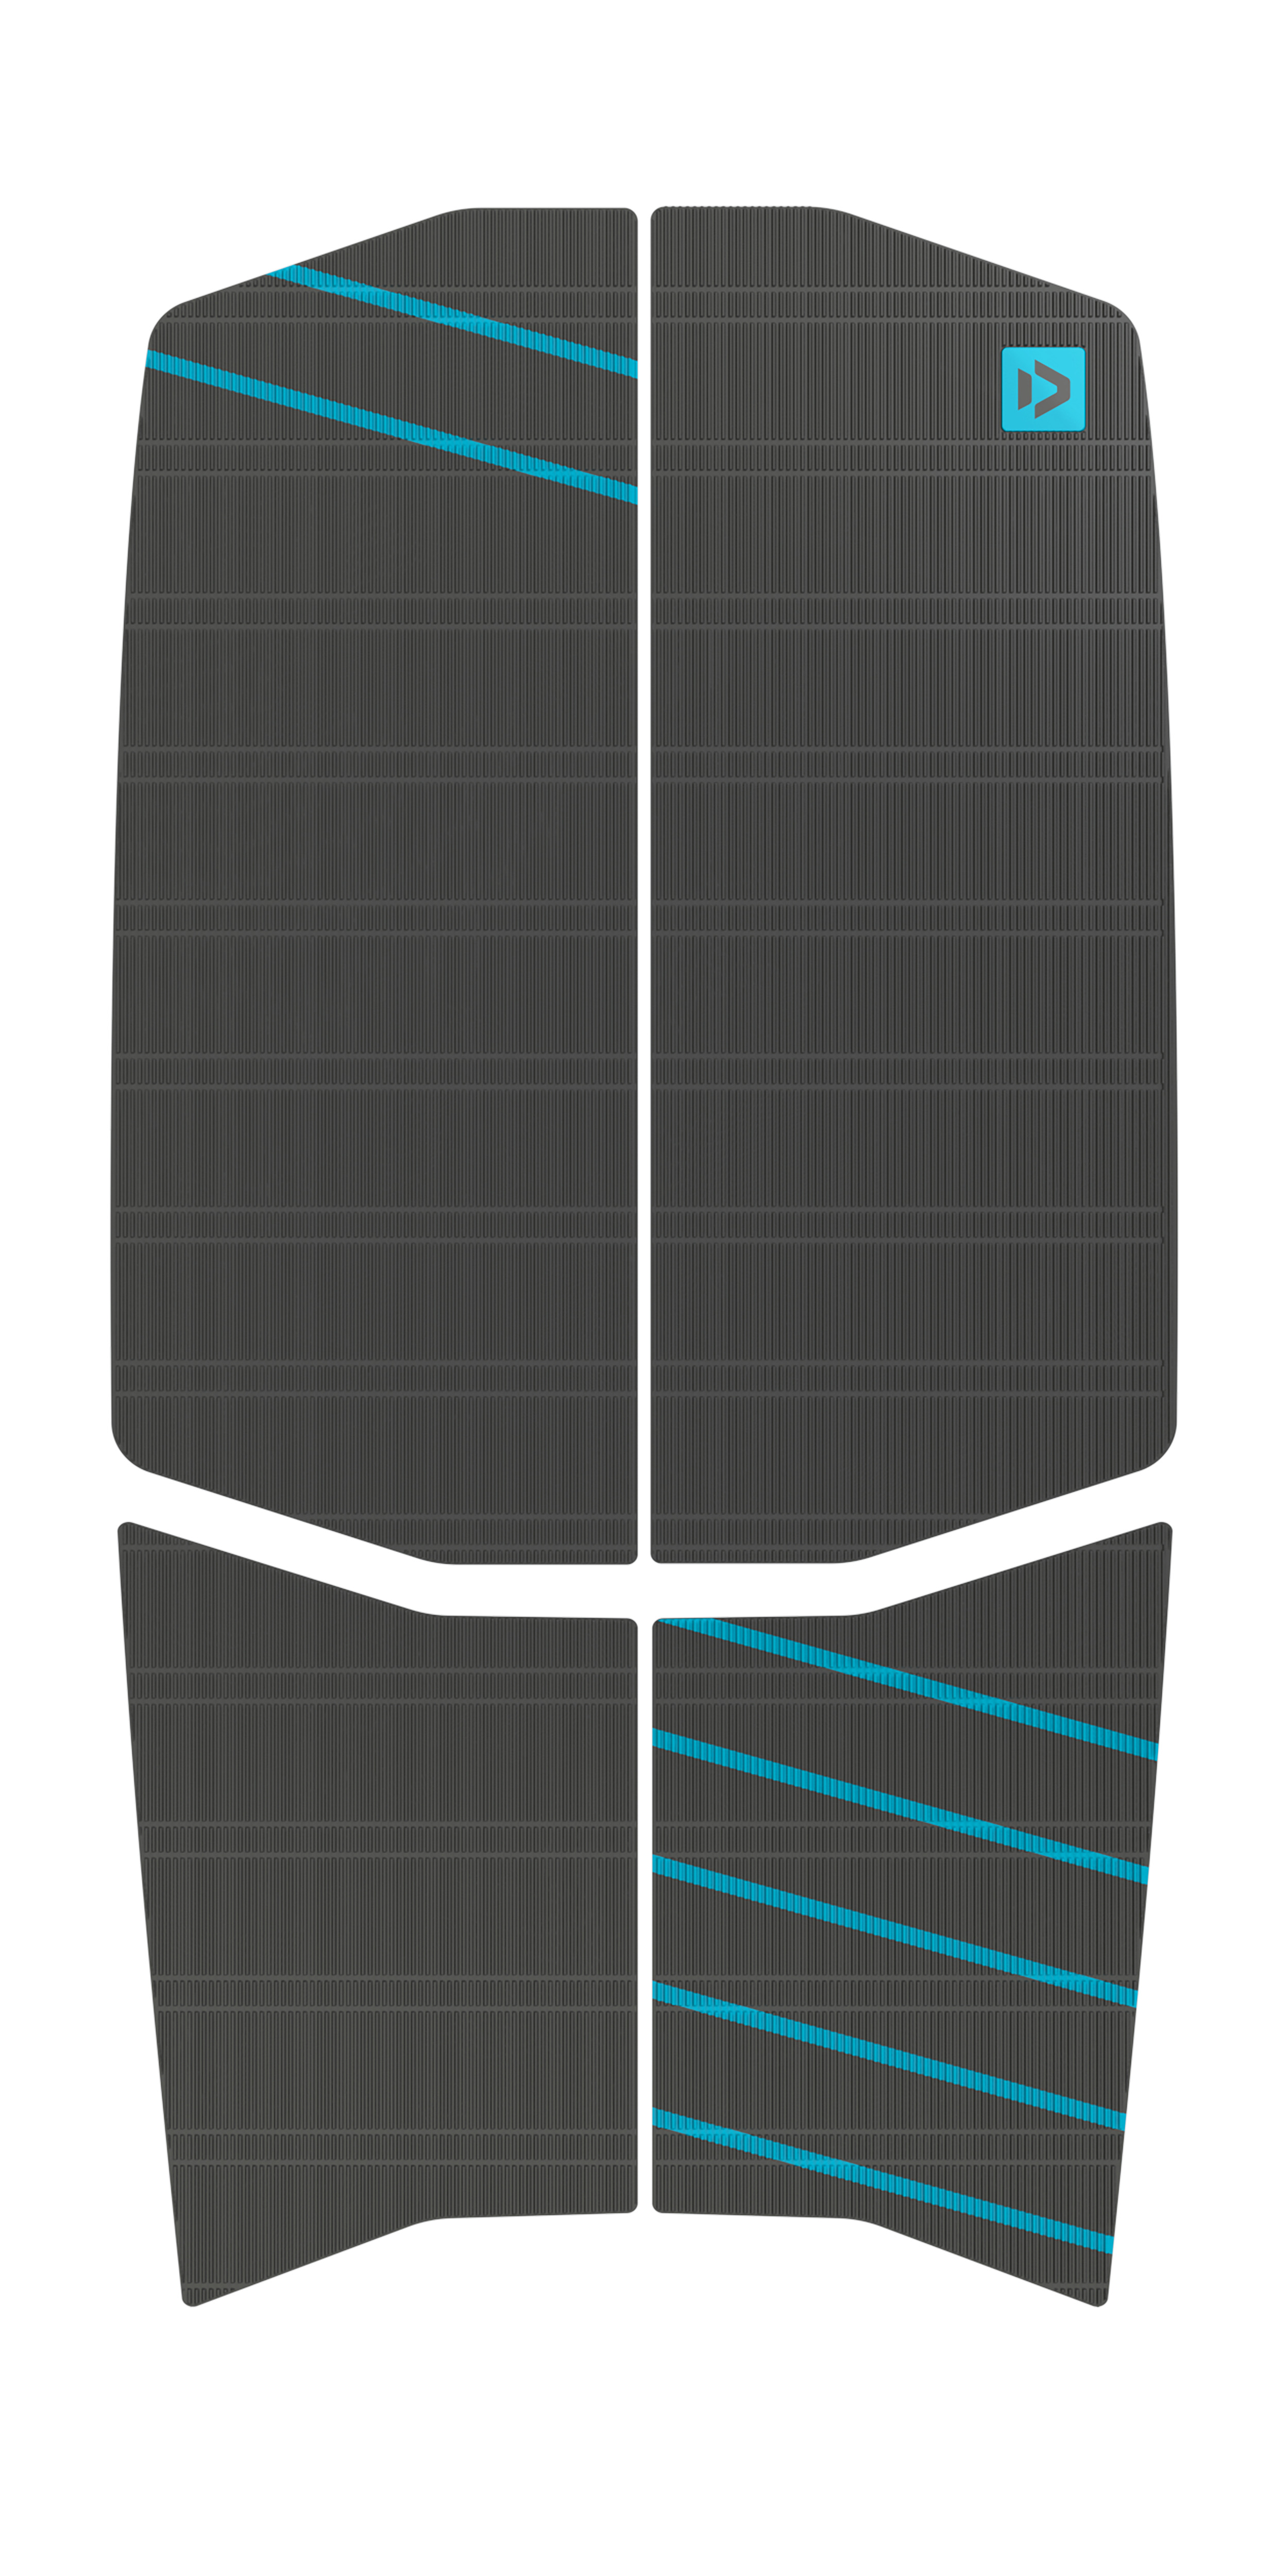 Duotone Traction Pad Pro 2021 - Front 5mm - für Surfboards